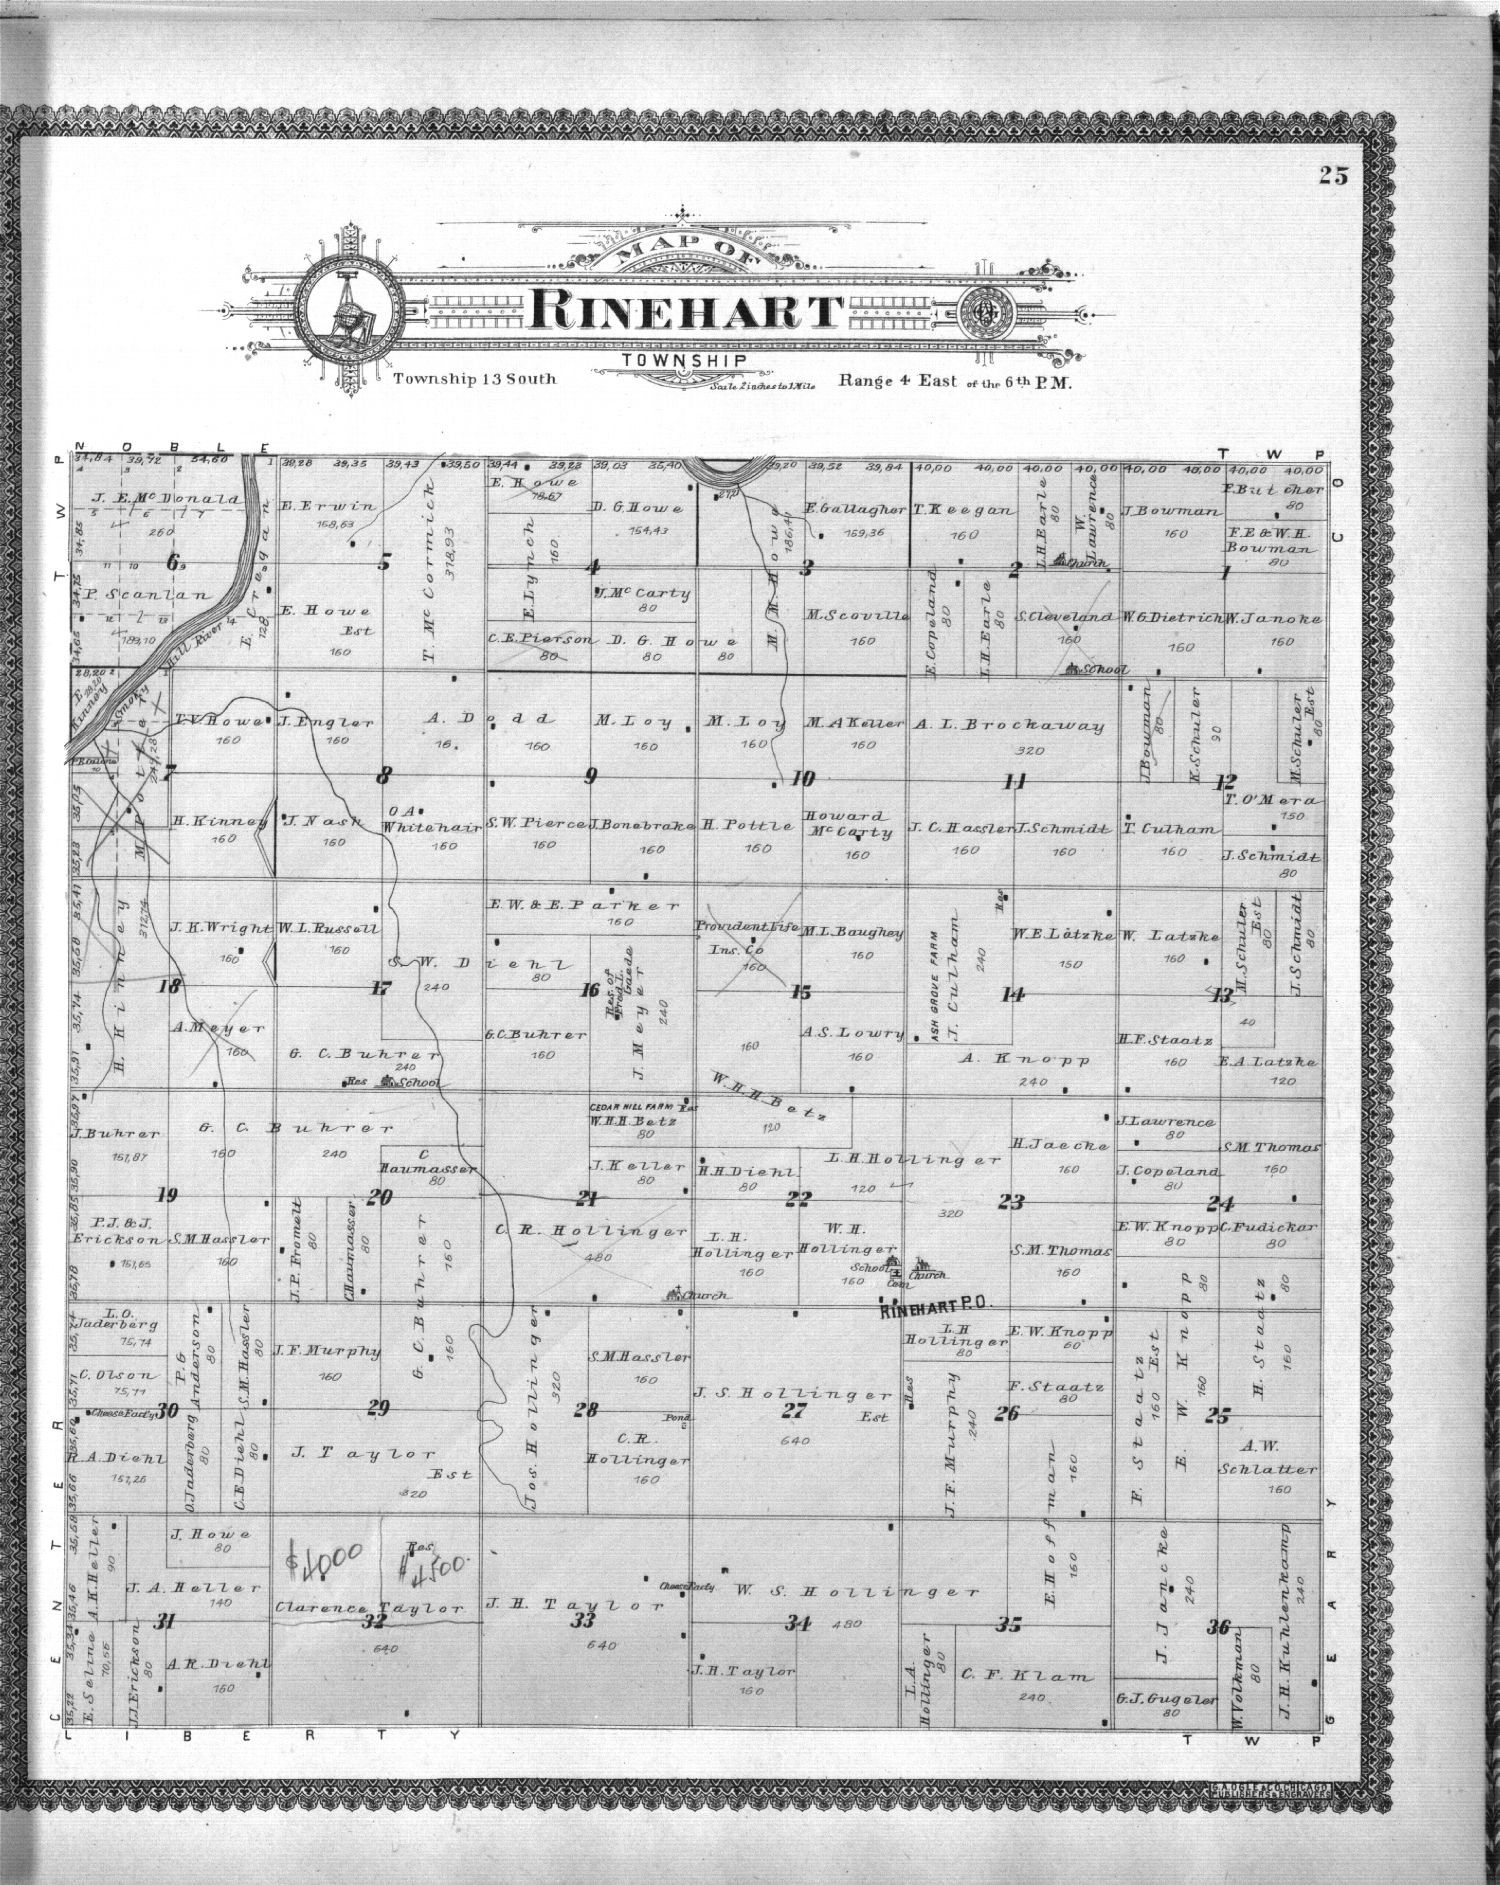 Standard atlas, Dickinson County, Kansas - 25